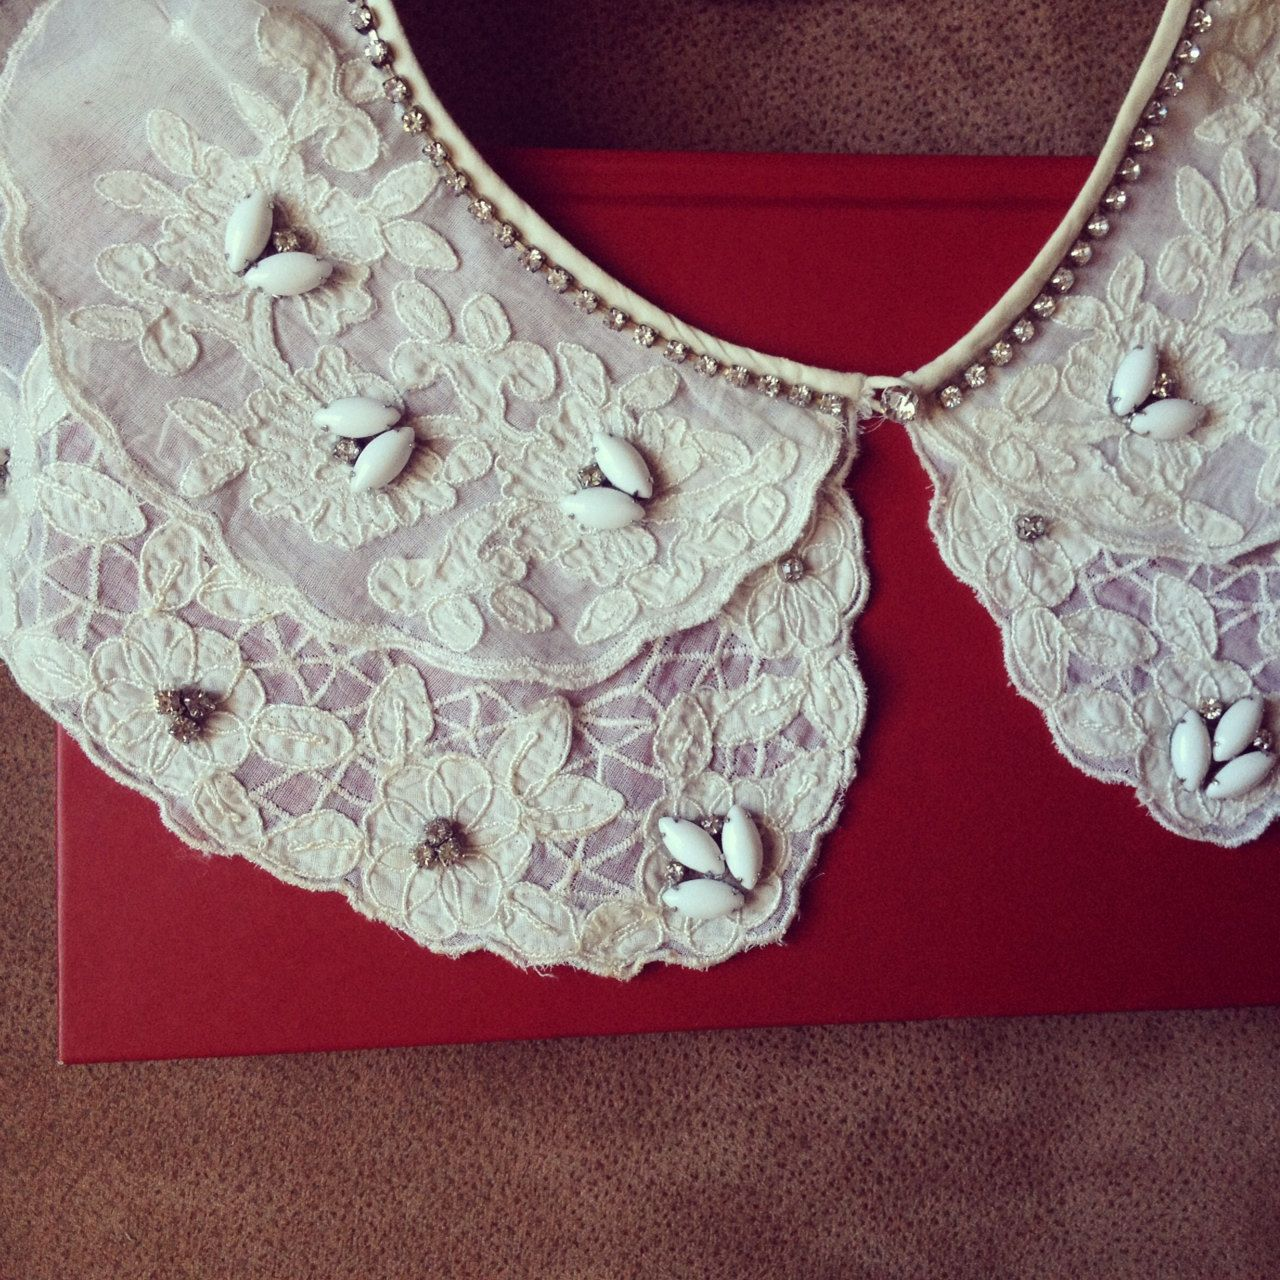 Bridal Collar: Embroidered Cotton Organdy Bridal Collar with Milk Glass Beads and Crystal Detail - ALL VINTAGE. $82.00, via Etsy.